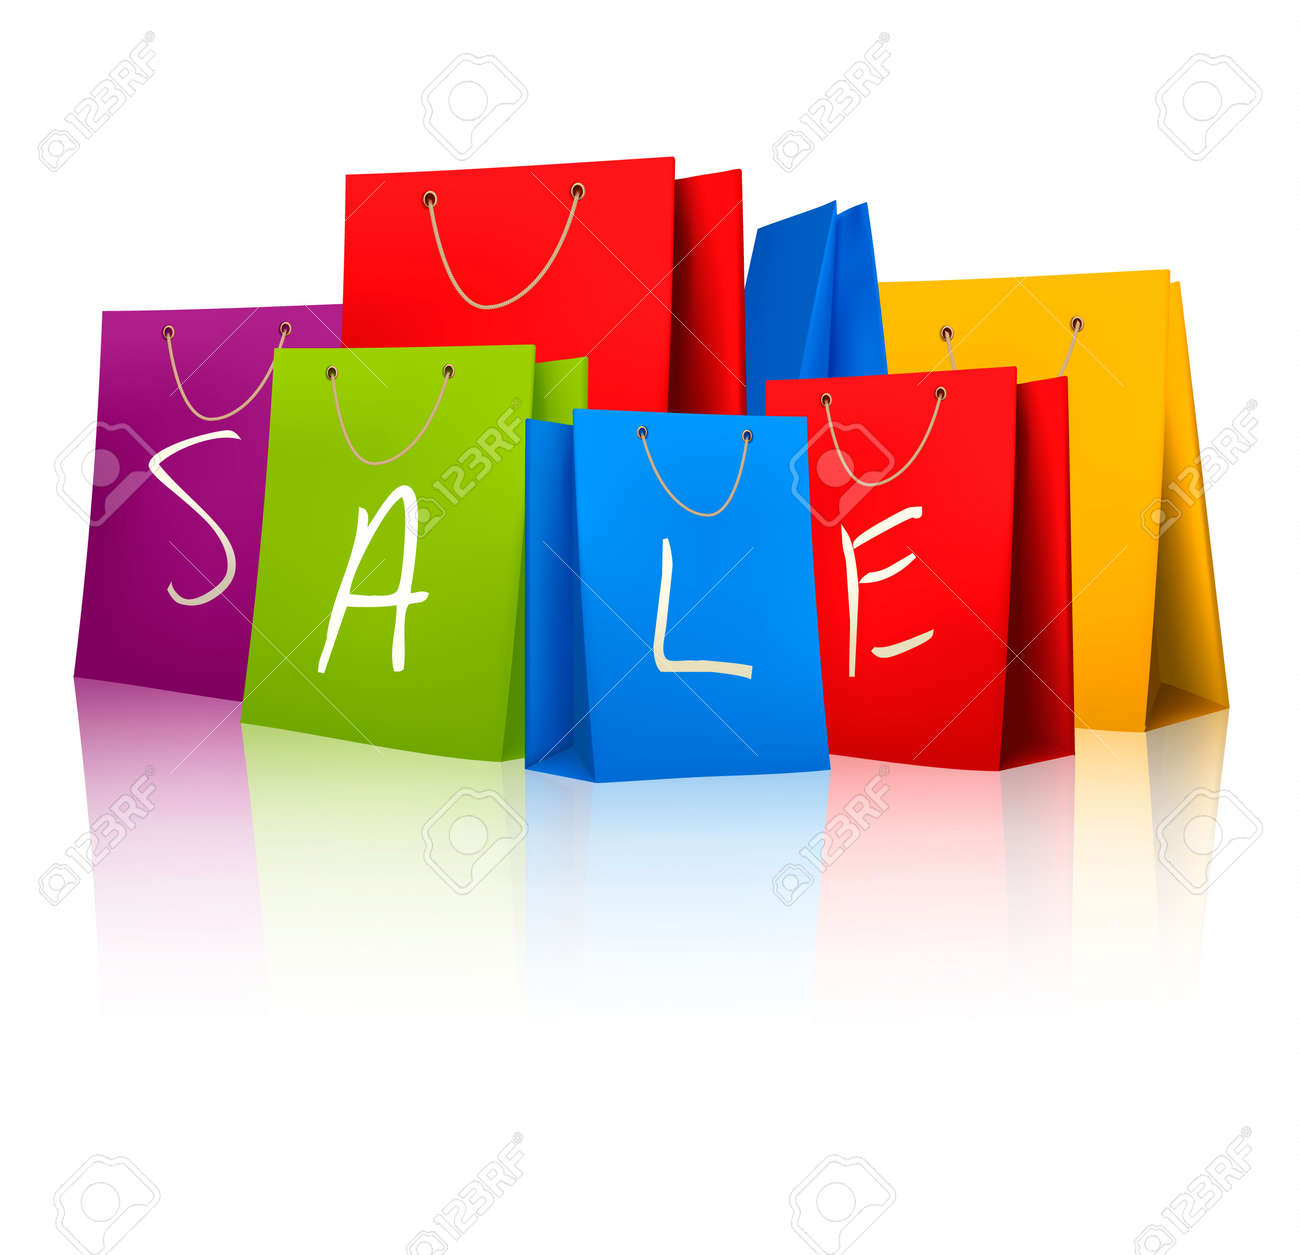 23,005 Paper Bag Sale Stock Vector Illustration And Royalty Free ...